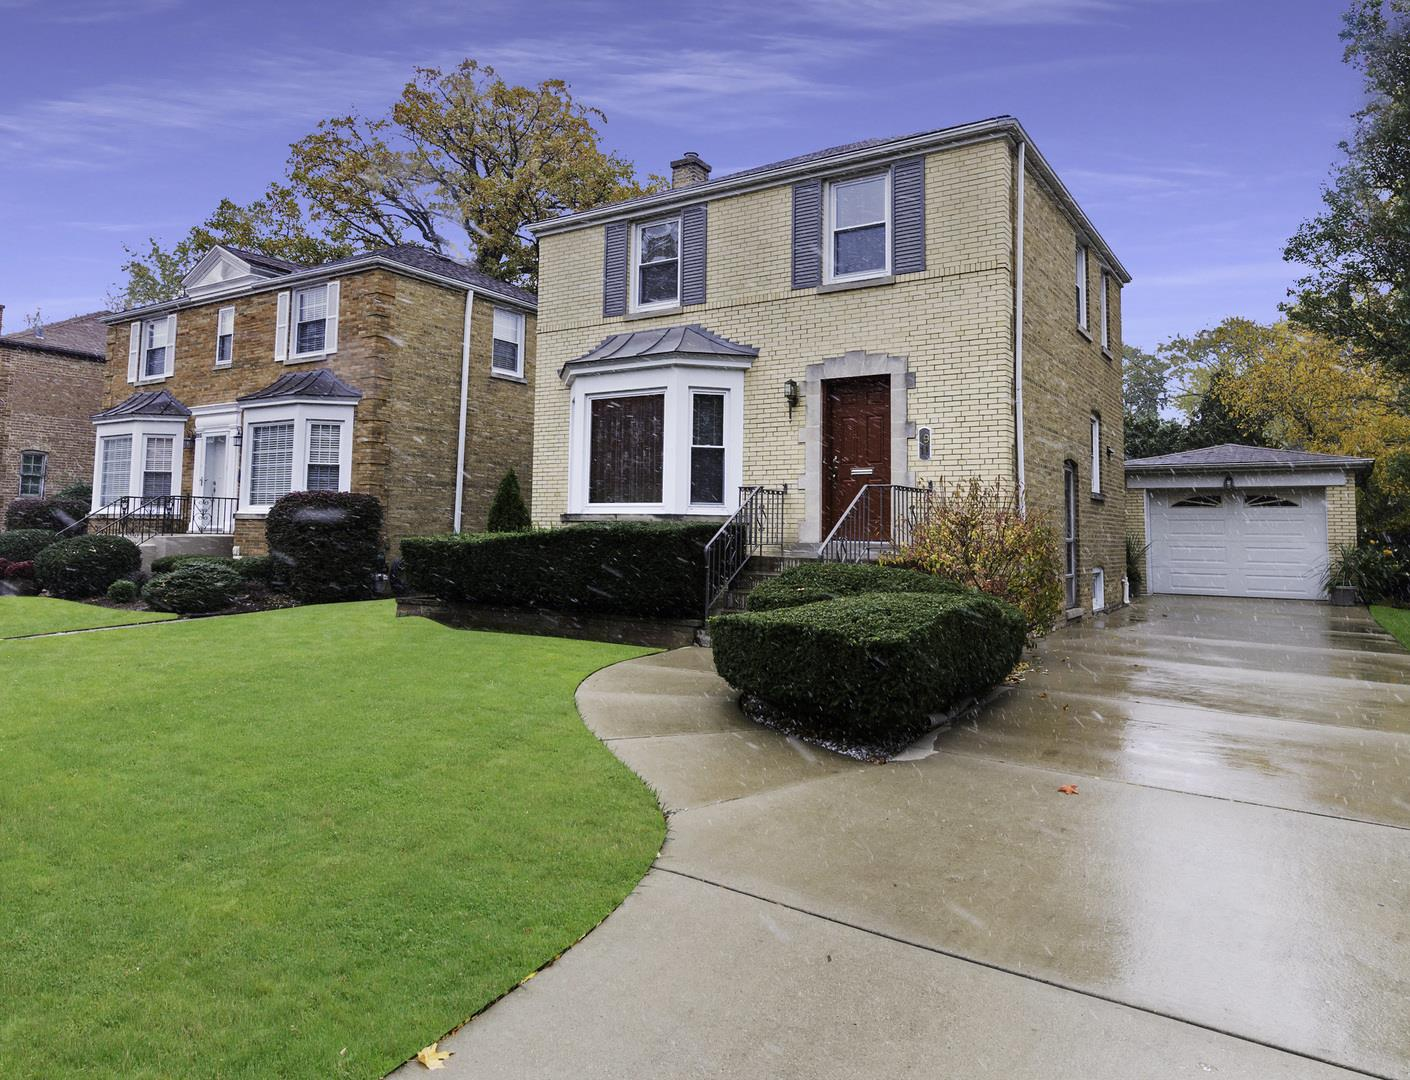 1911 N 76th Court, Elmwood Park, IL 60707 - #: 10917730